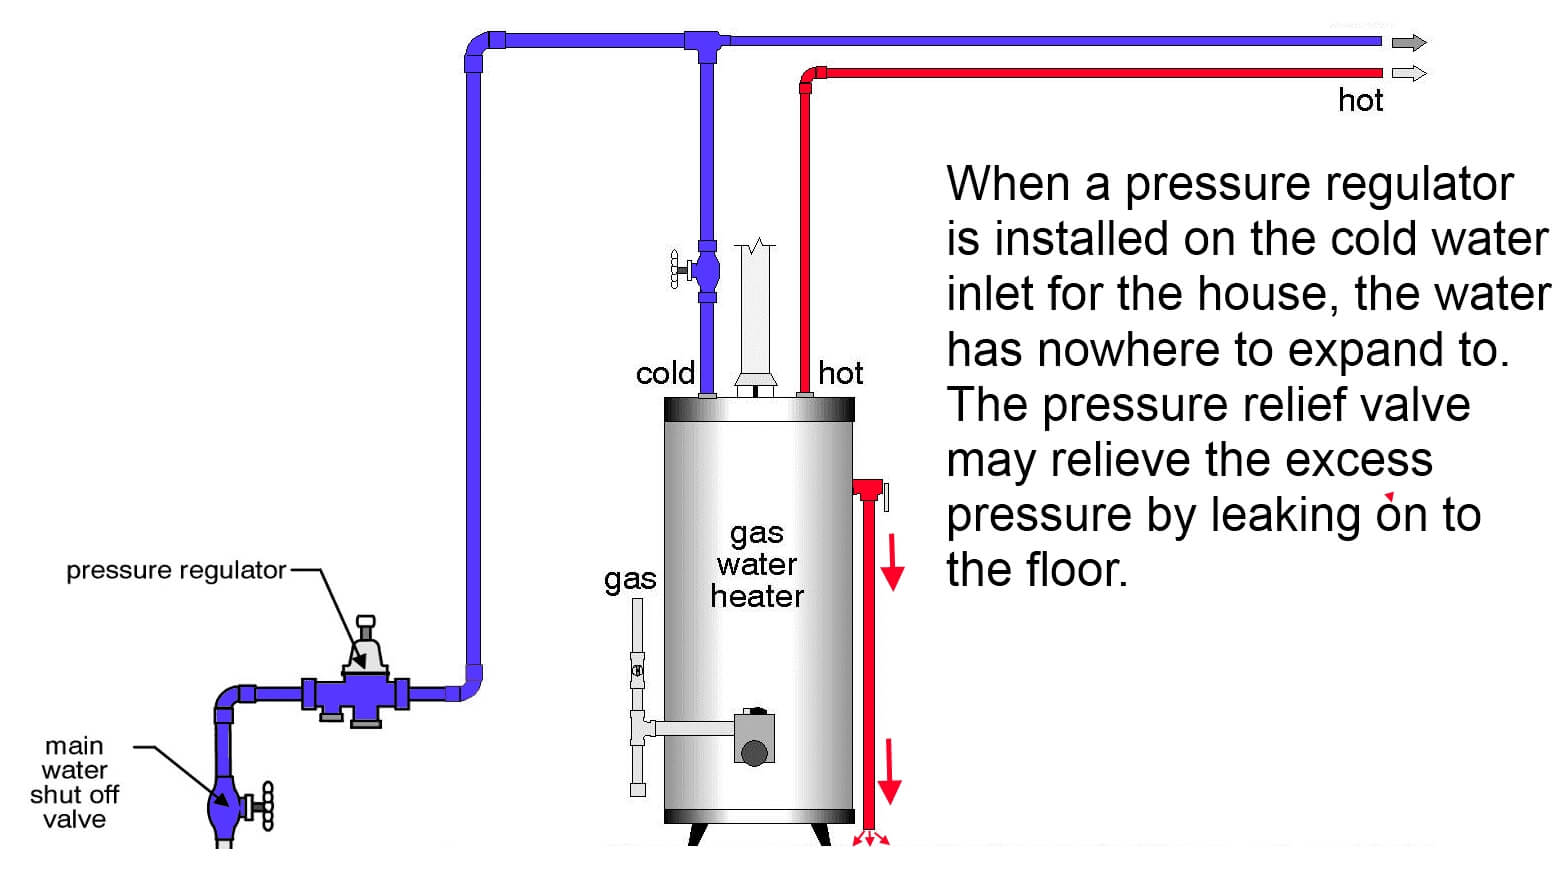 Why The Relief Valve At Water Heater Is Leaking And What To Do Wiring Diagrams House France Pressure Regulator Prevents Expansion